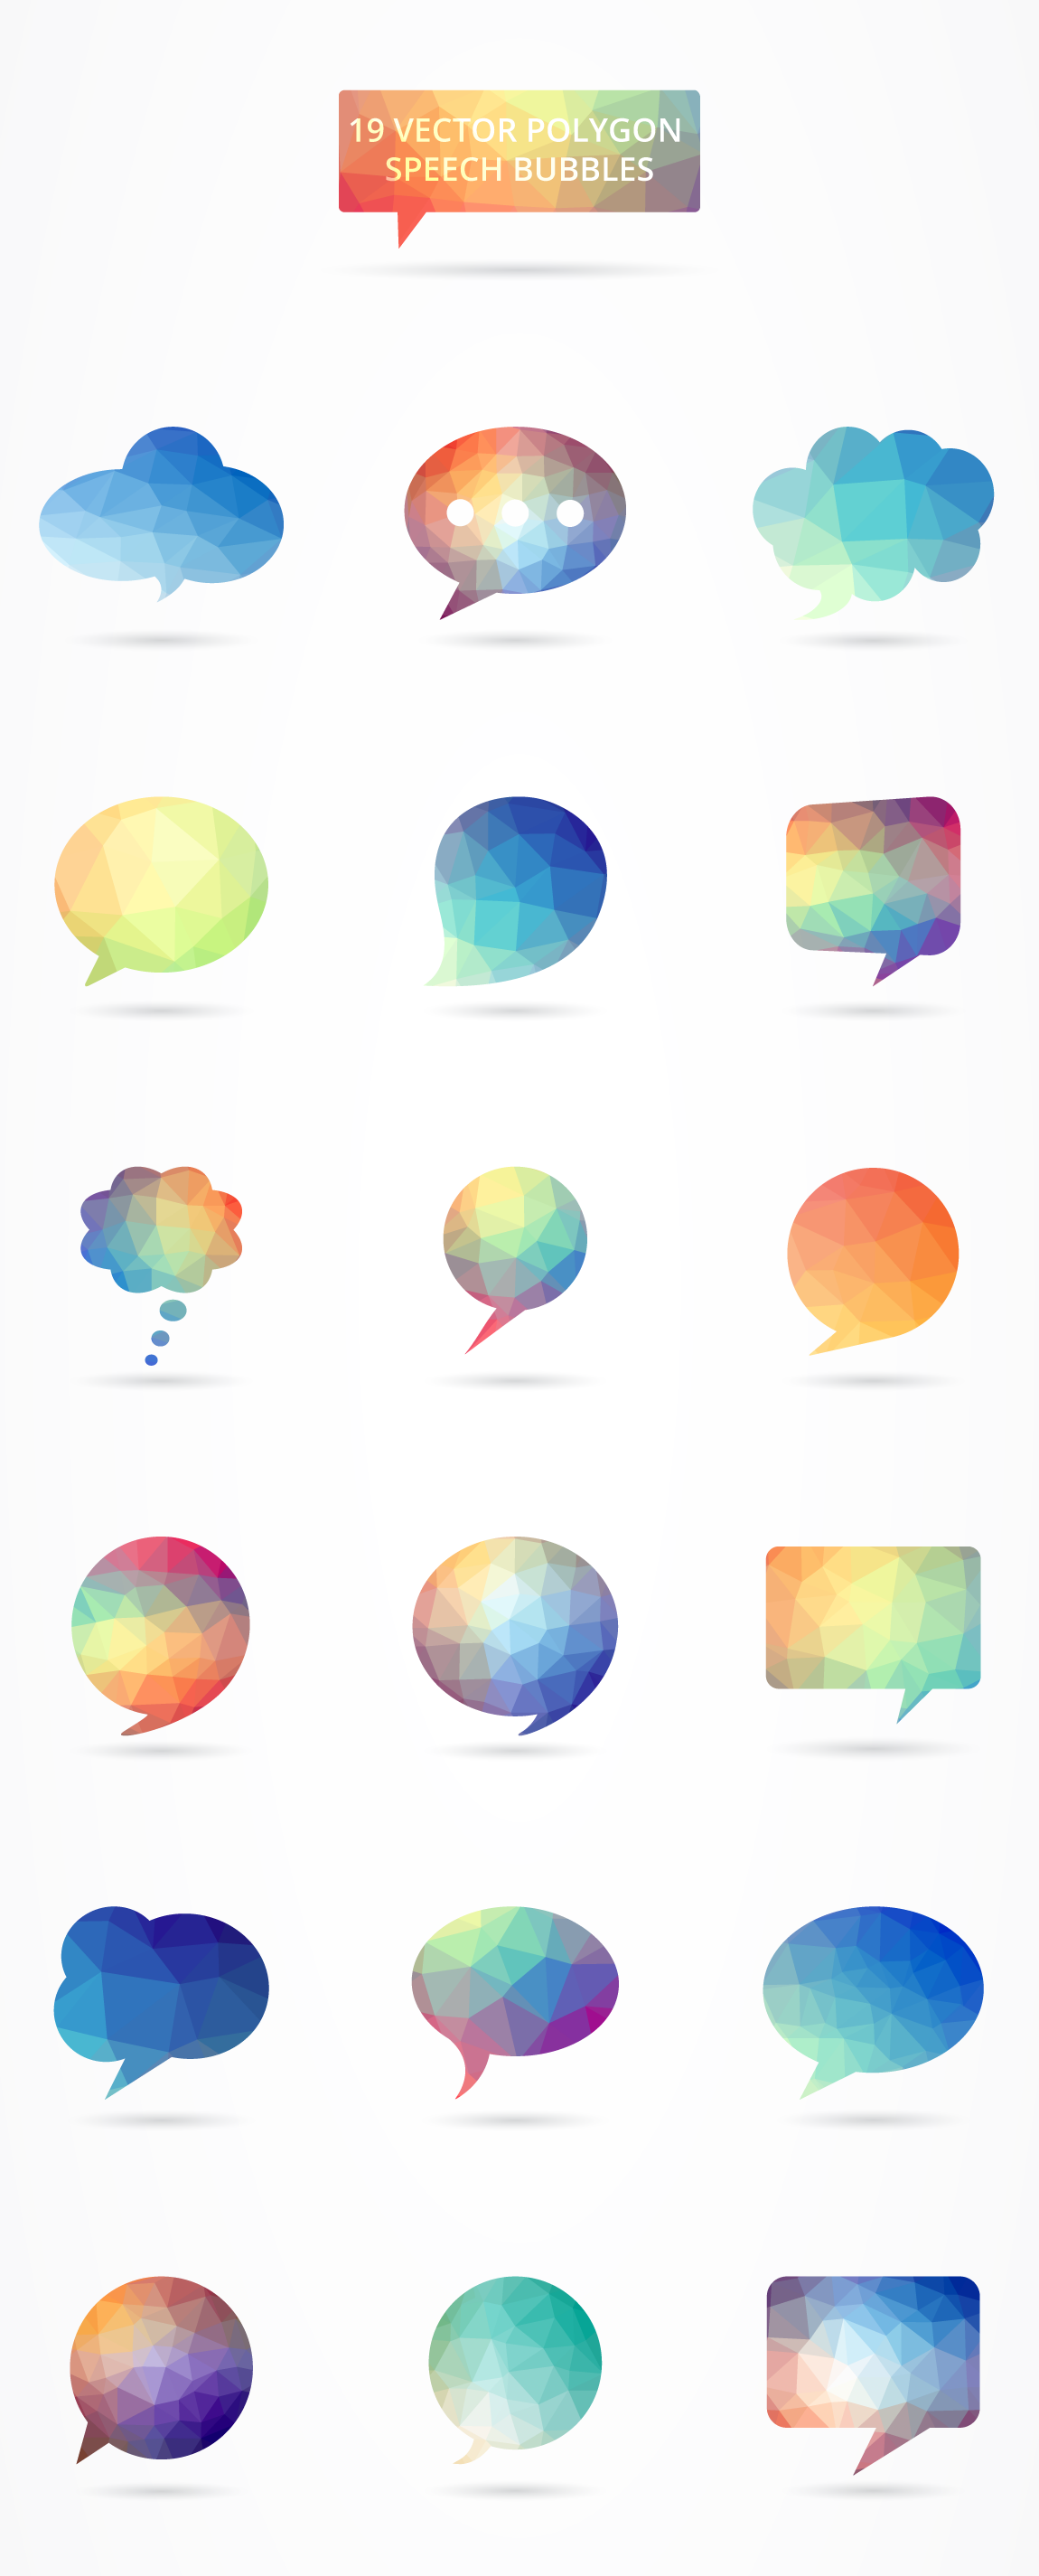 polygonal-speech-bubble-set